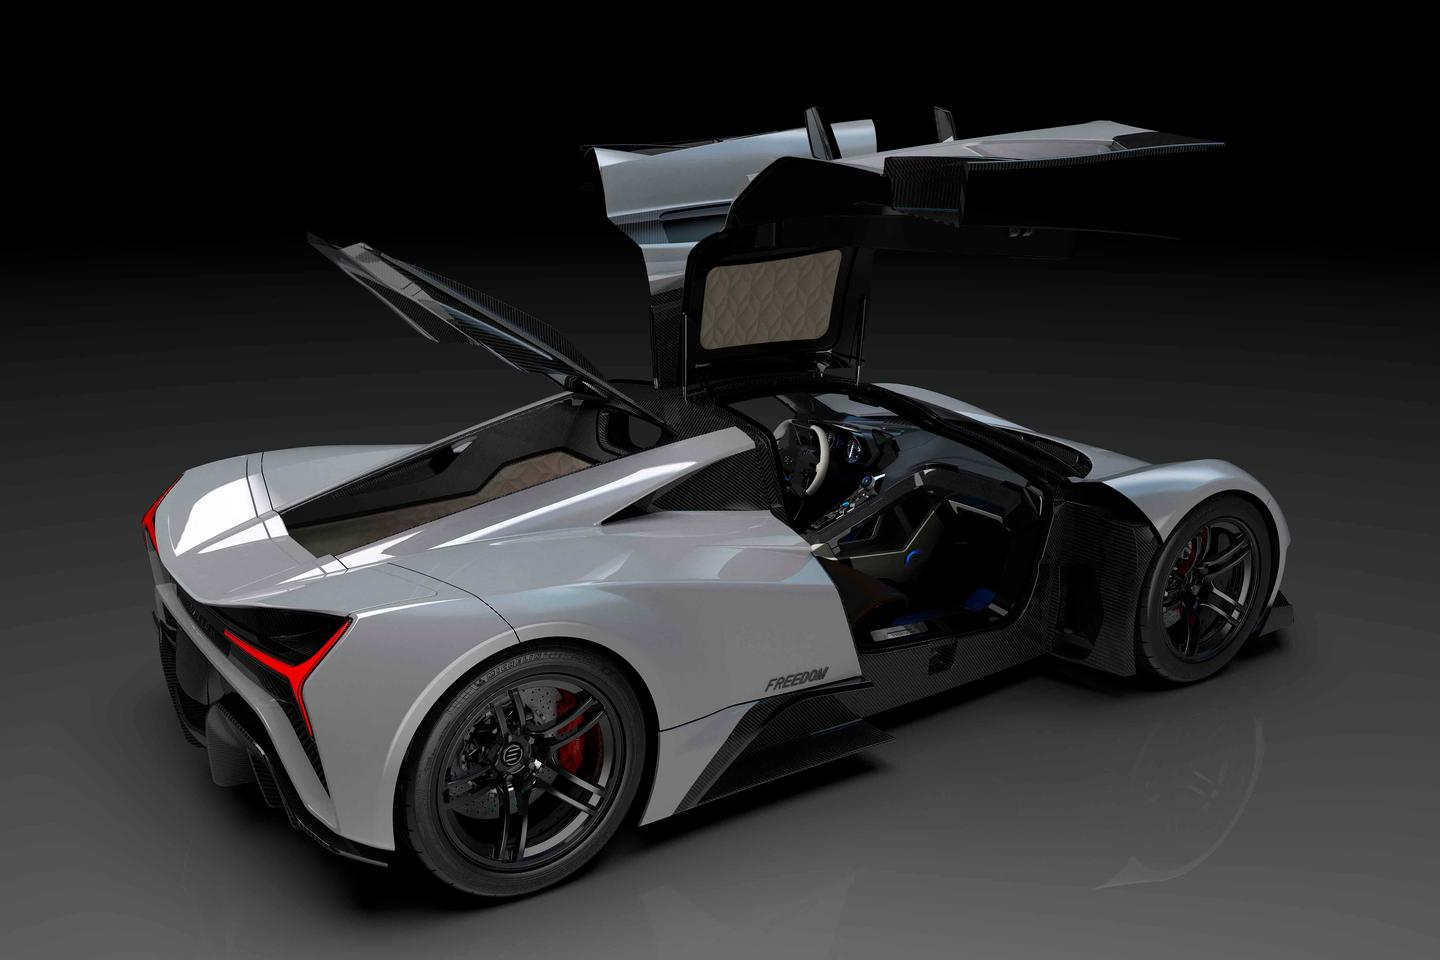 The gull-winged Elation Freedom electric hypercar makes up to 1,903 horsepower, and that's quite a decent amount